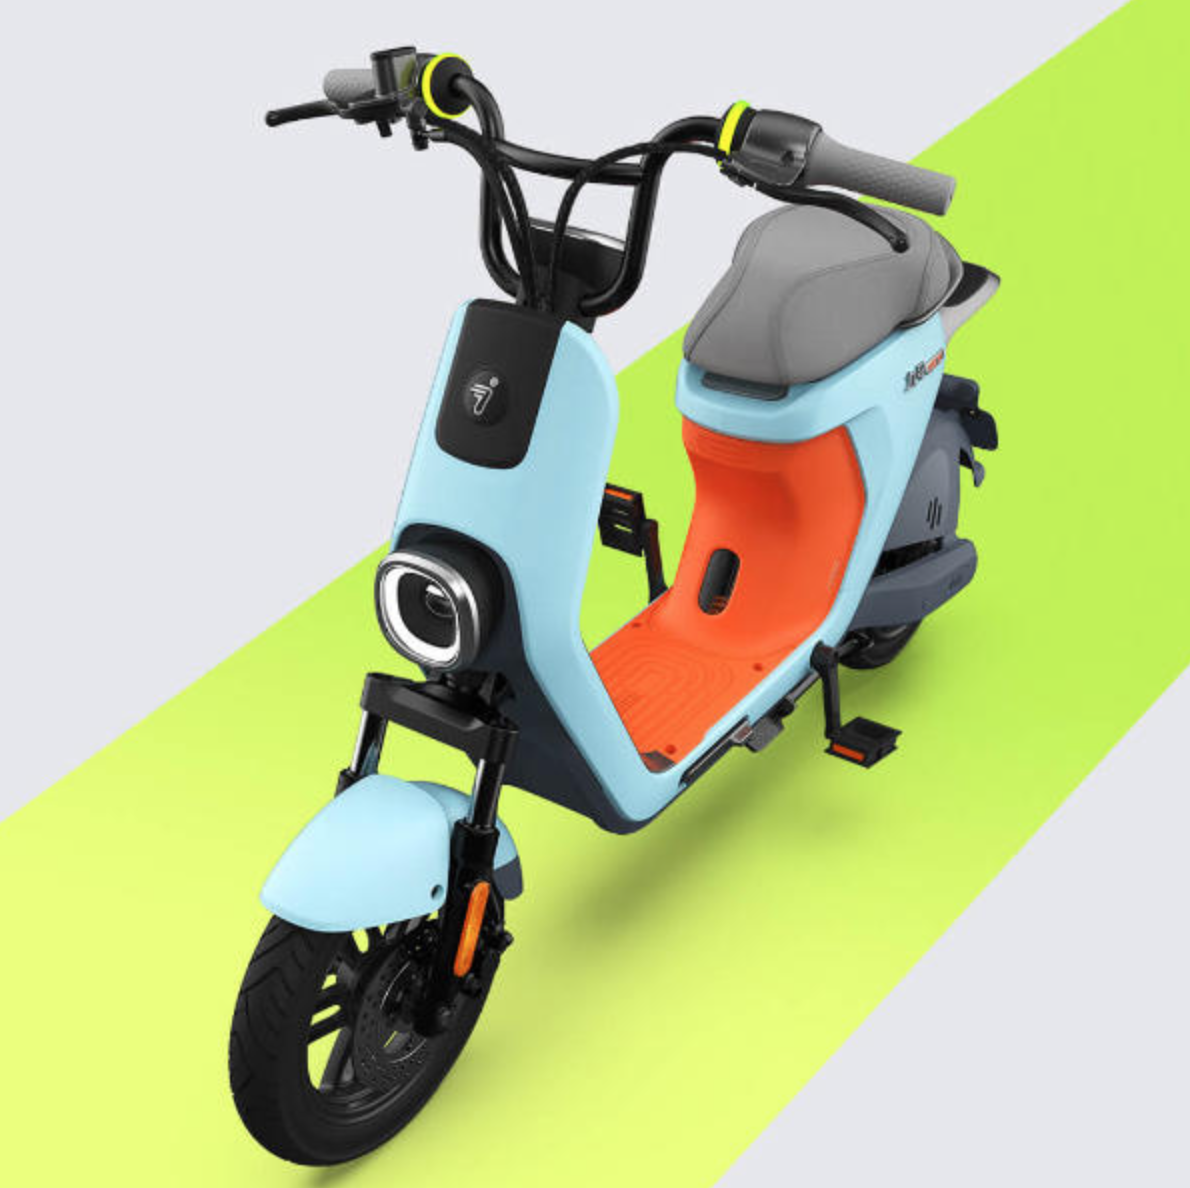 ninebot c40 electric scooter design